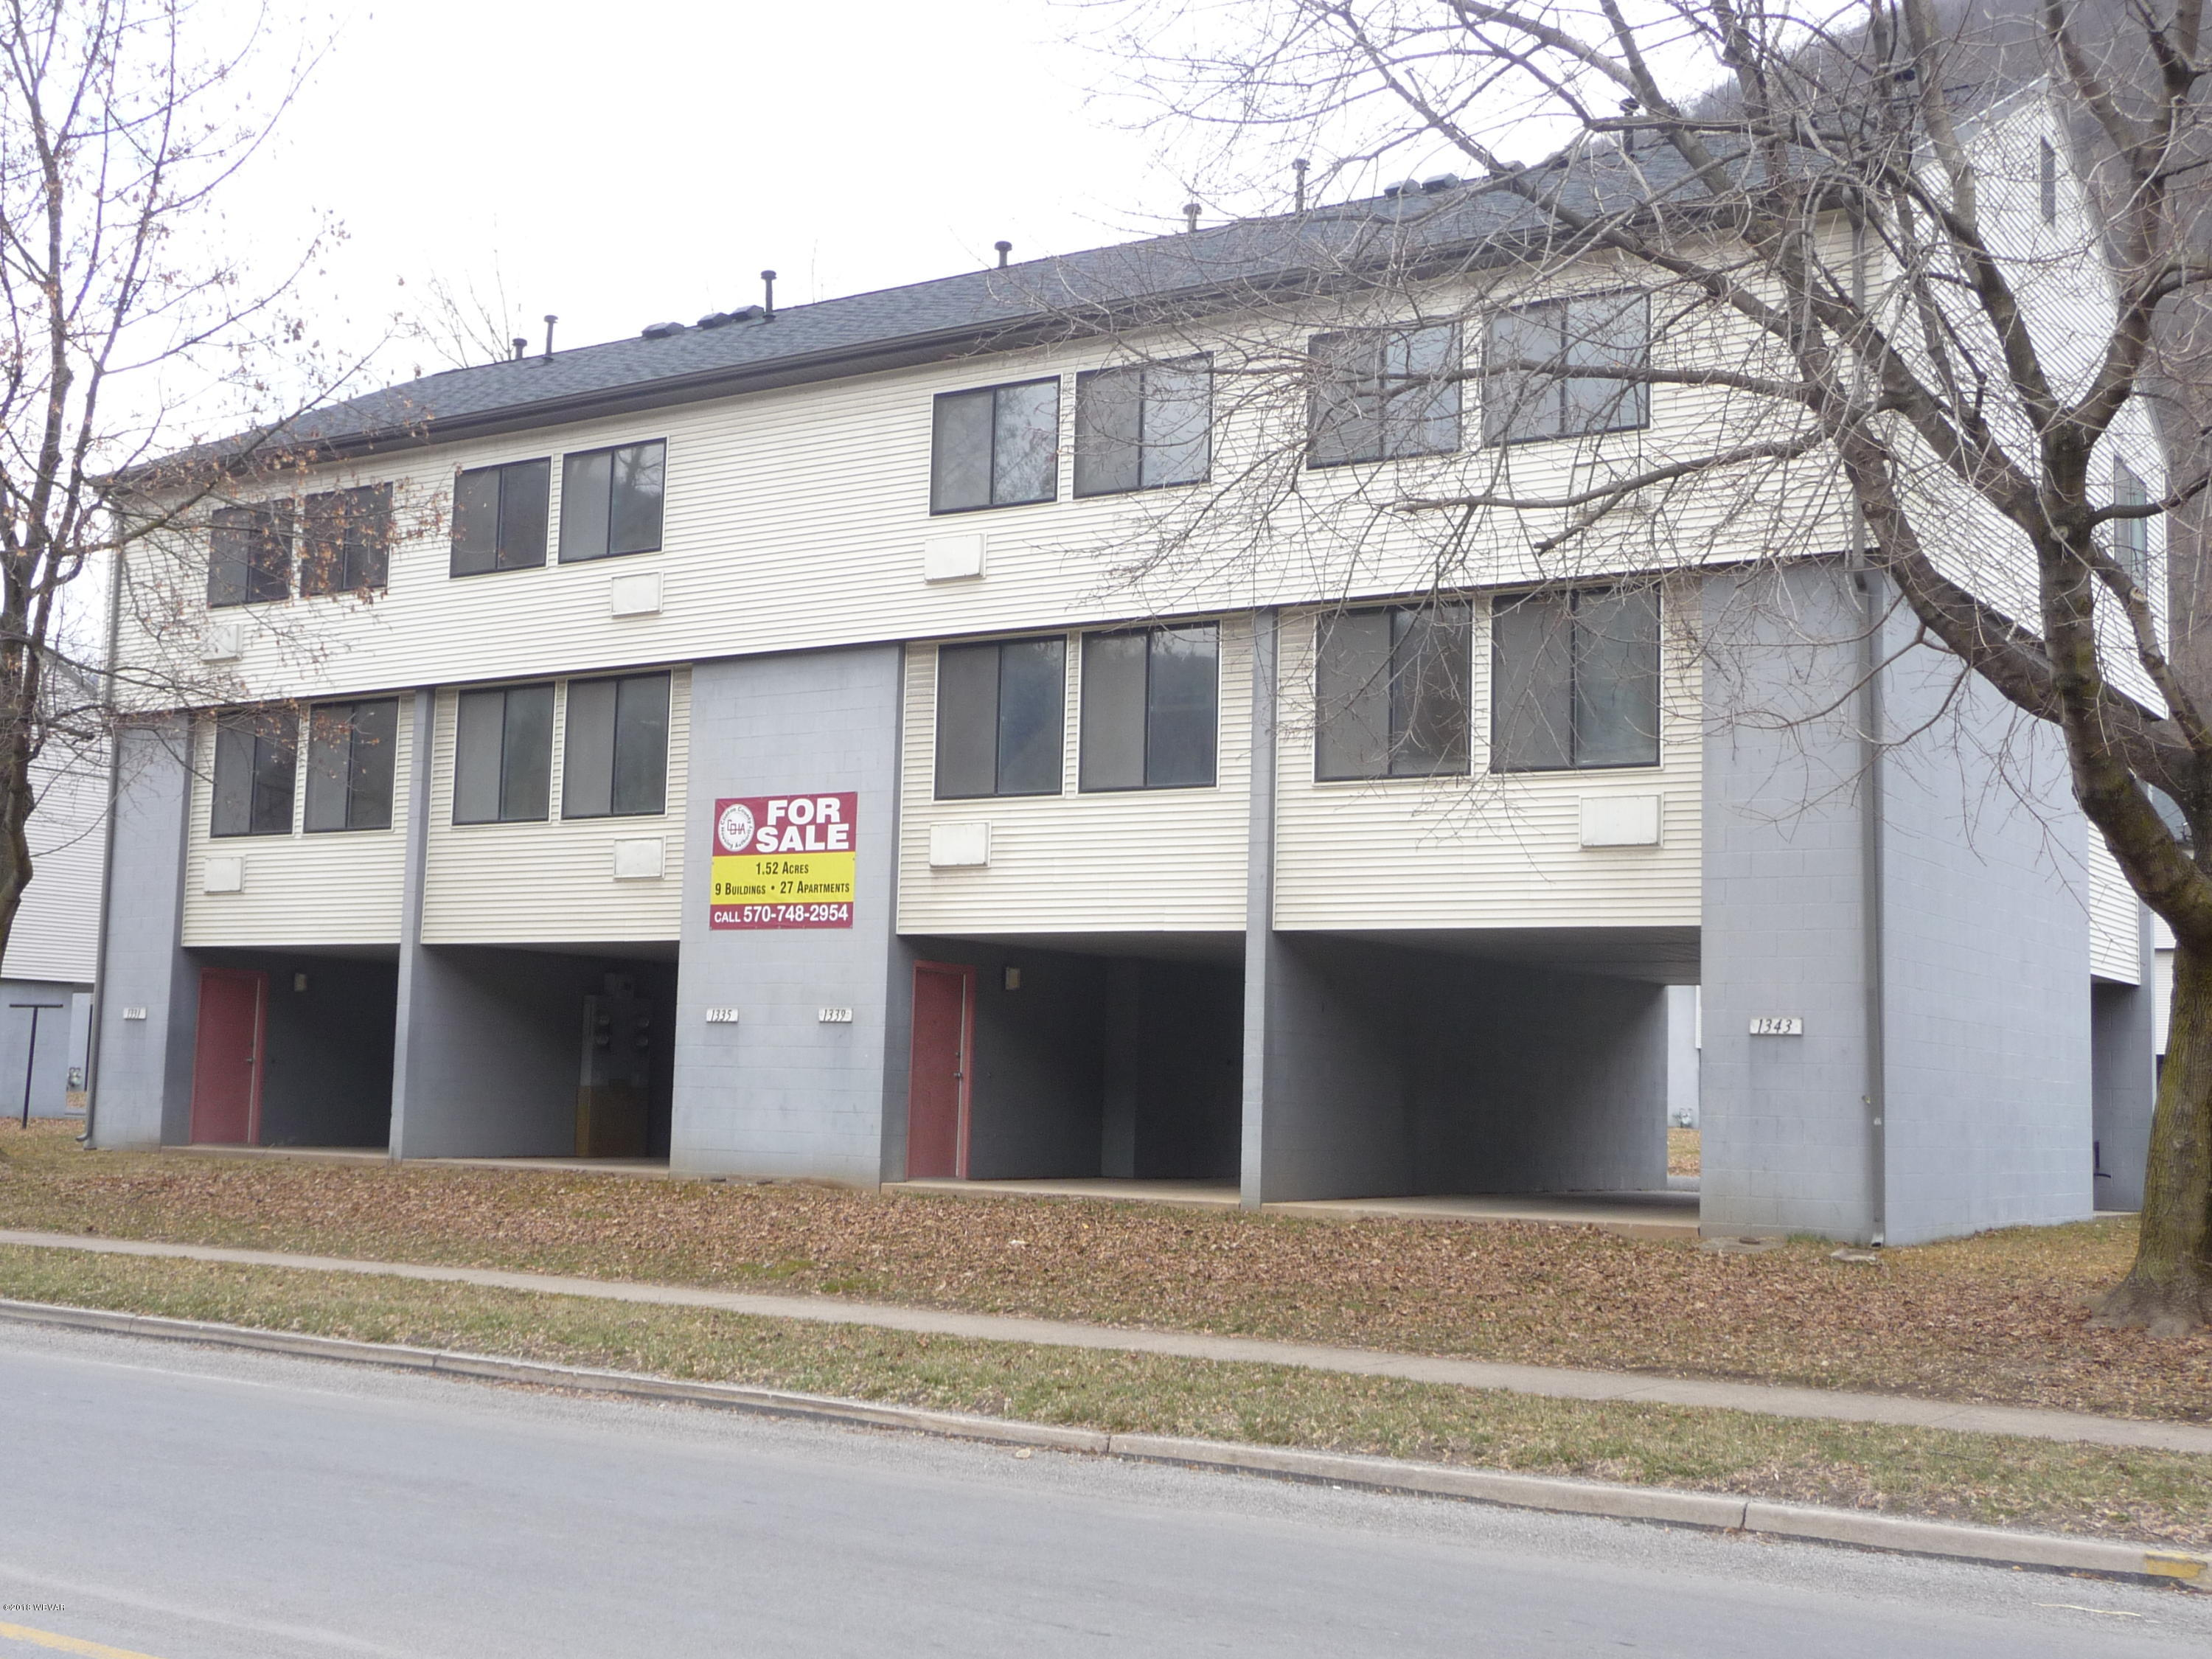 1309 HURON AVENUE, Renovo, PA 17764, ,Multi-units,For sale,HURON,WB-83552